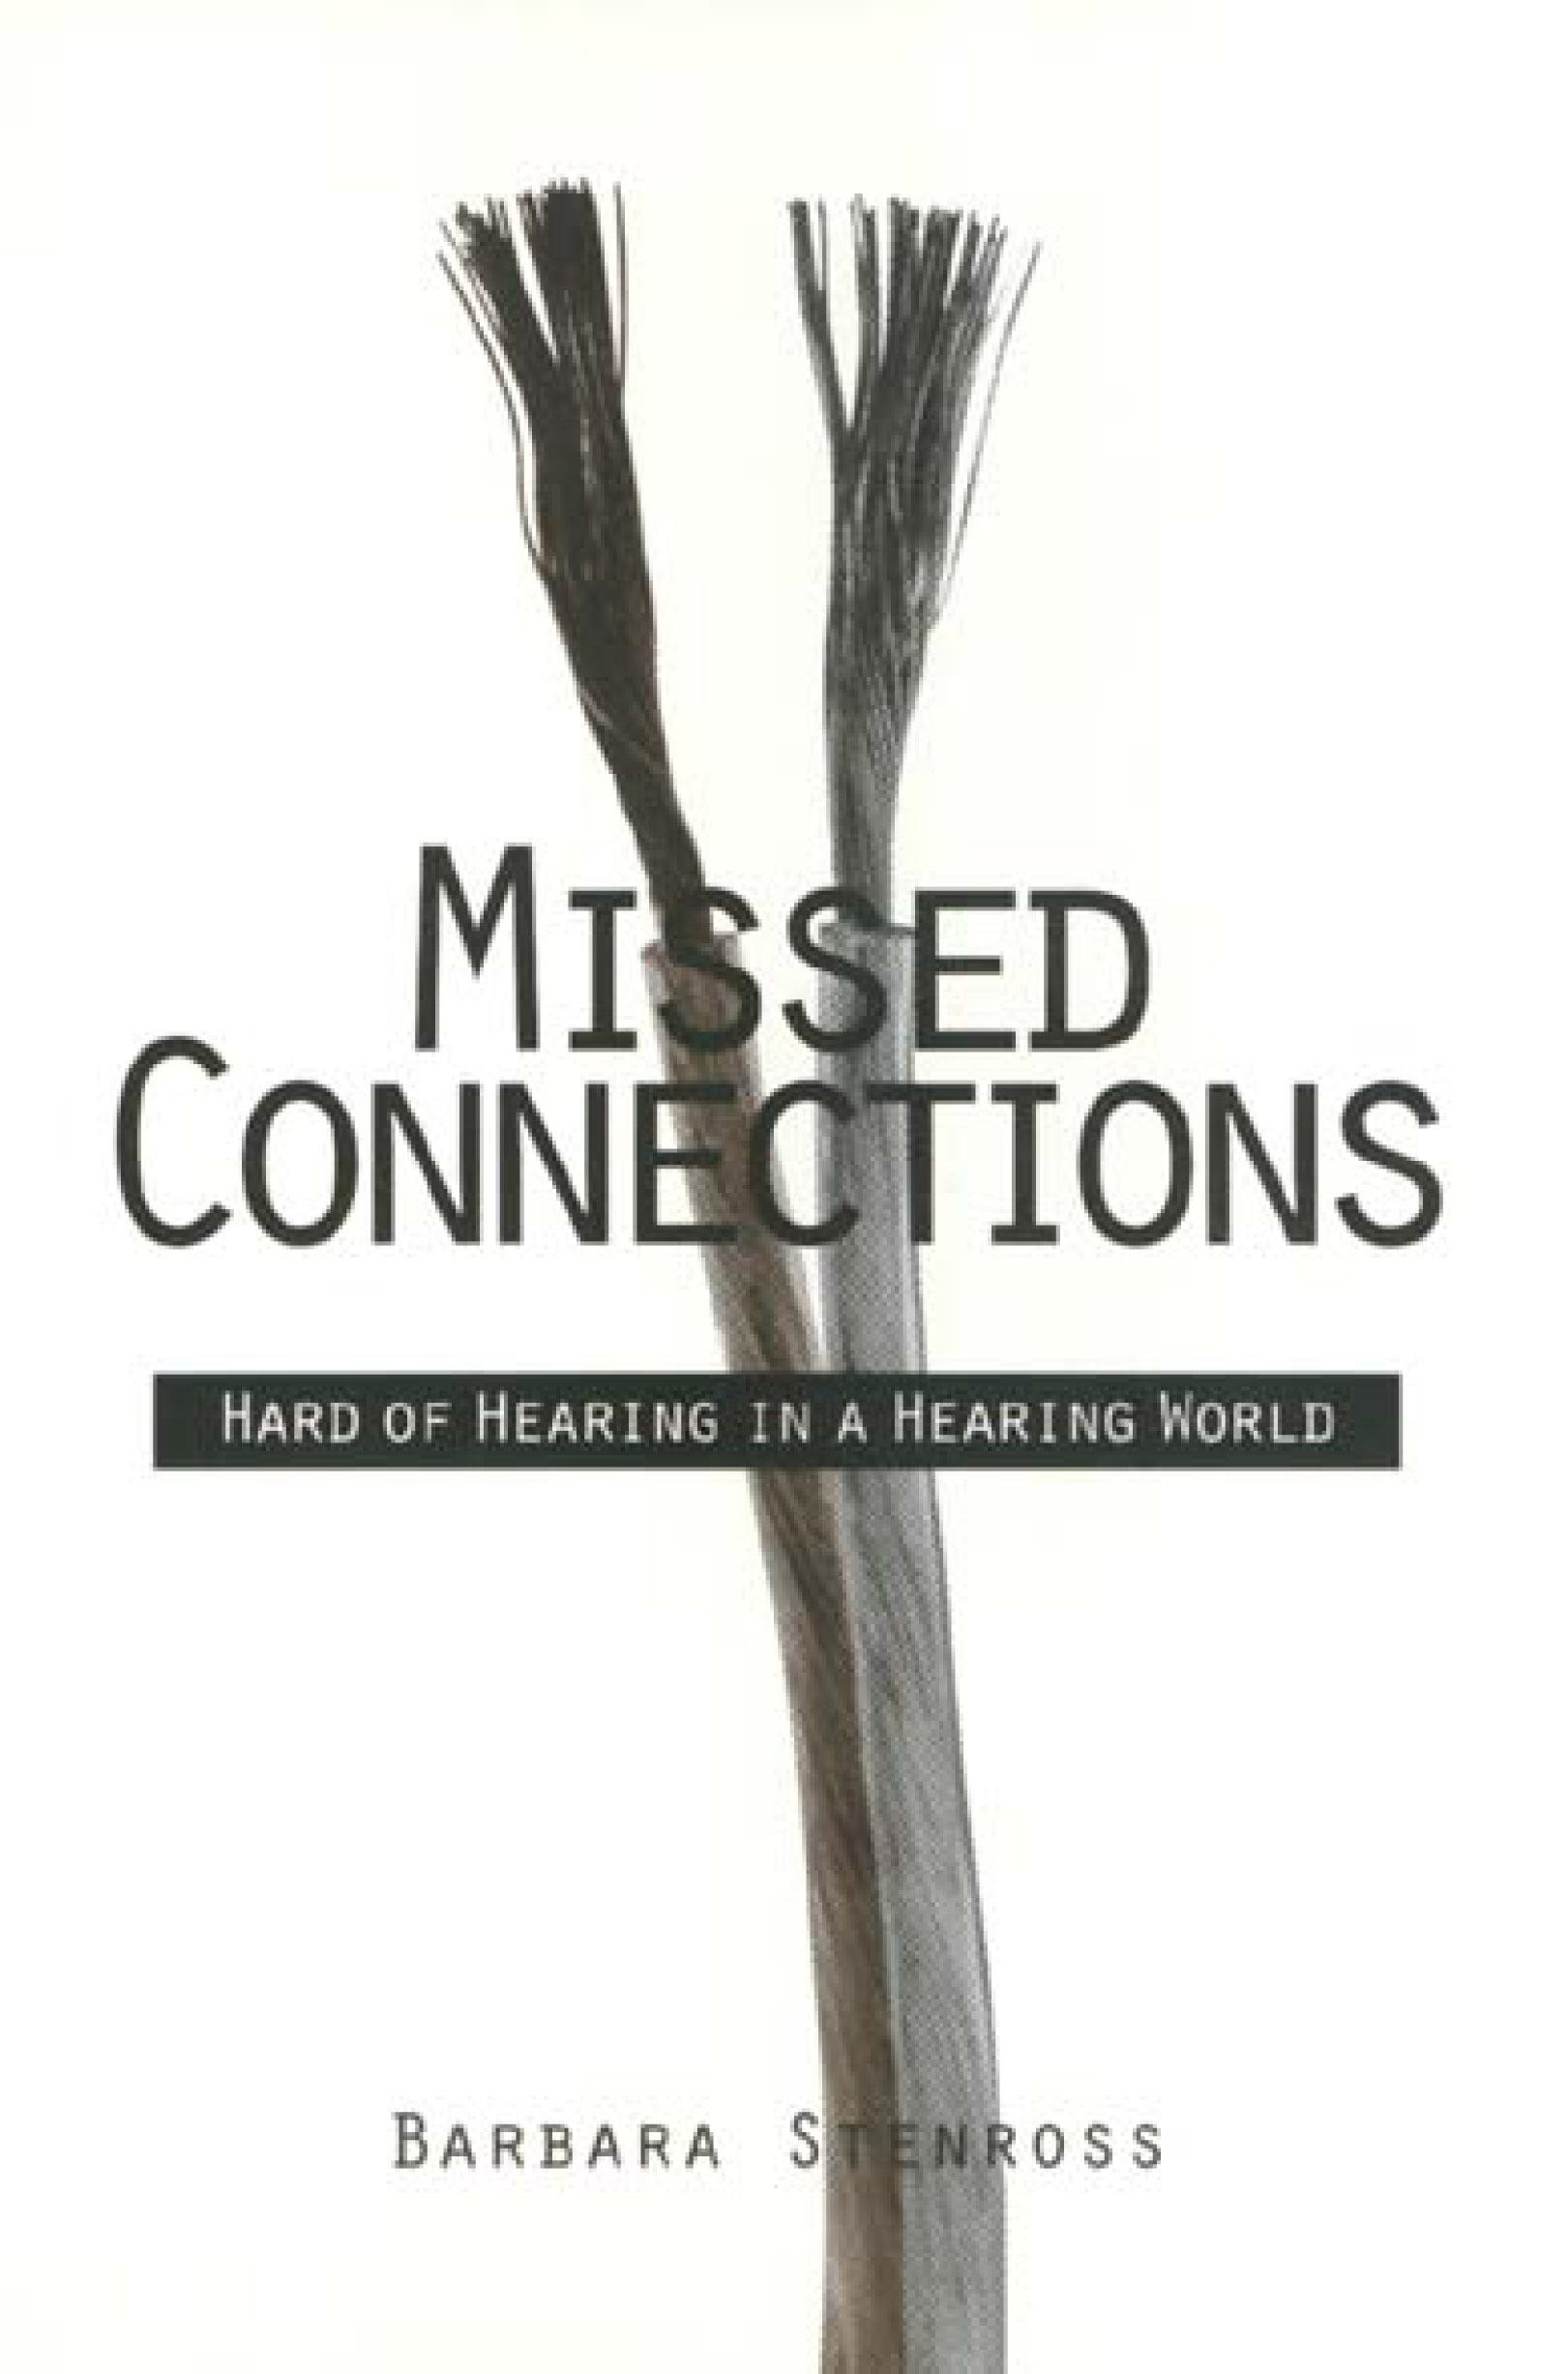 Missed Connections: Hard of Hearing in a Hearing World